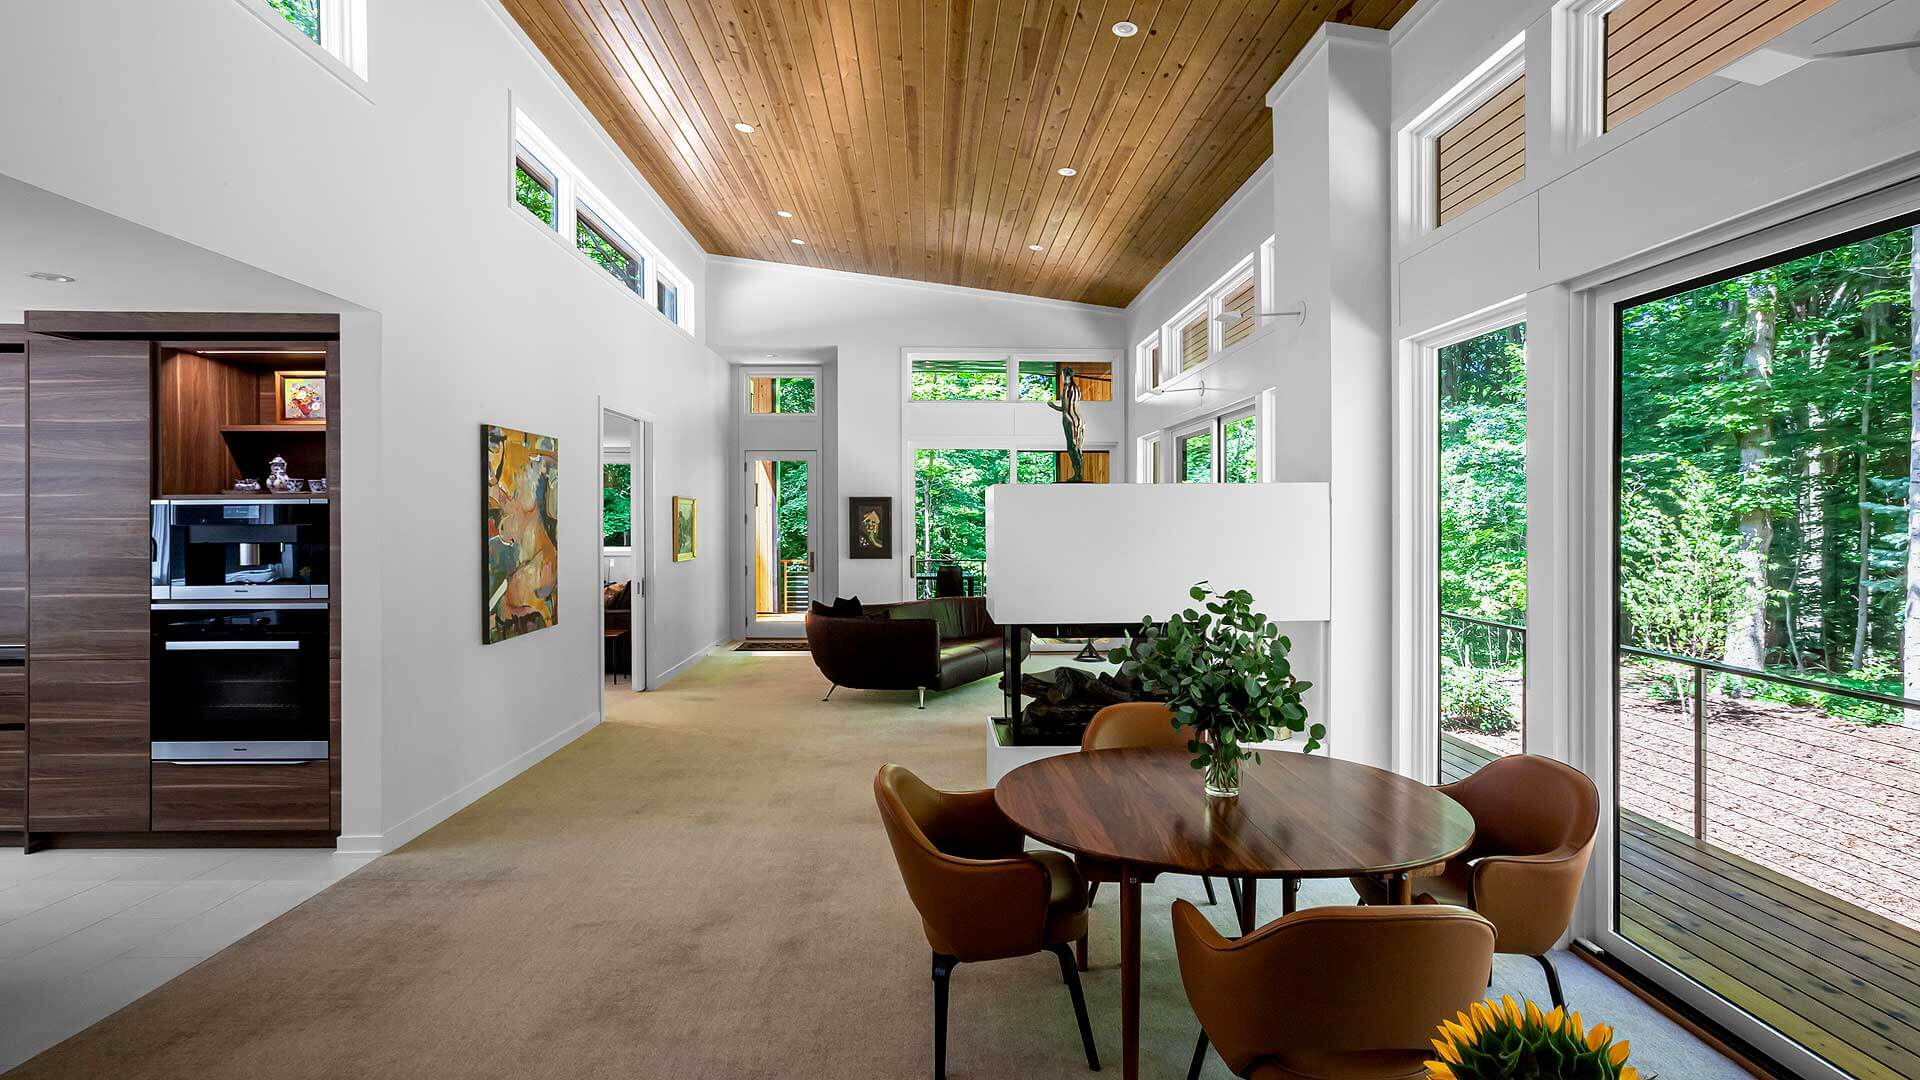 Open concept Living-Dining space optimizes natural light and panoramic views of Pier Cove Valley - Bridge House - Fennville, Michigan - Lake Michigan